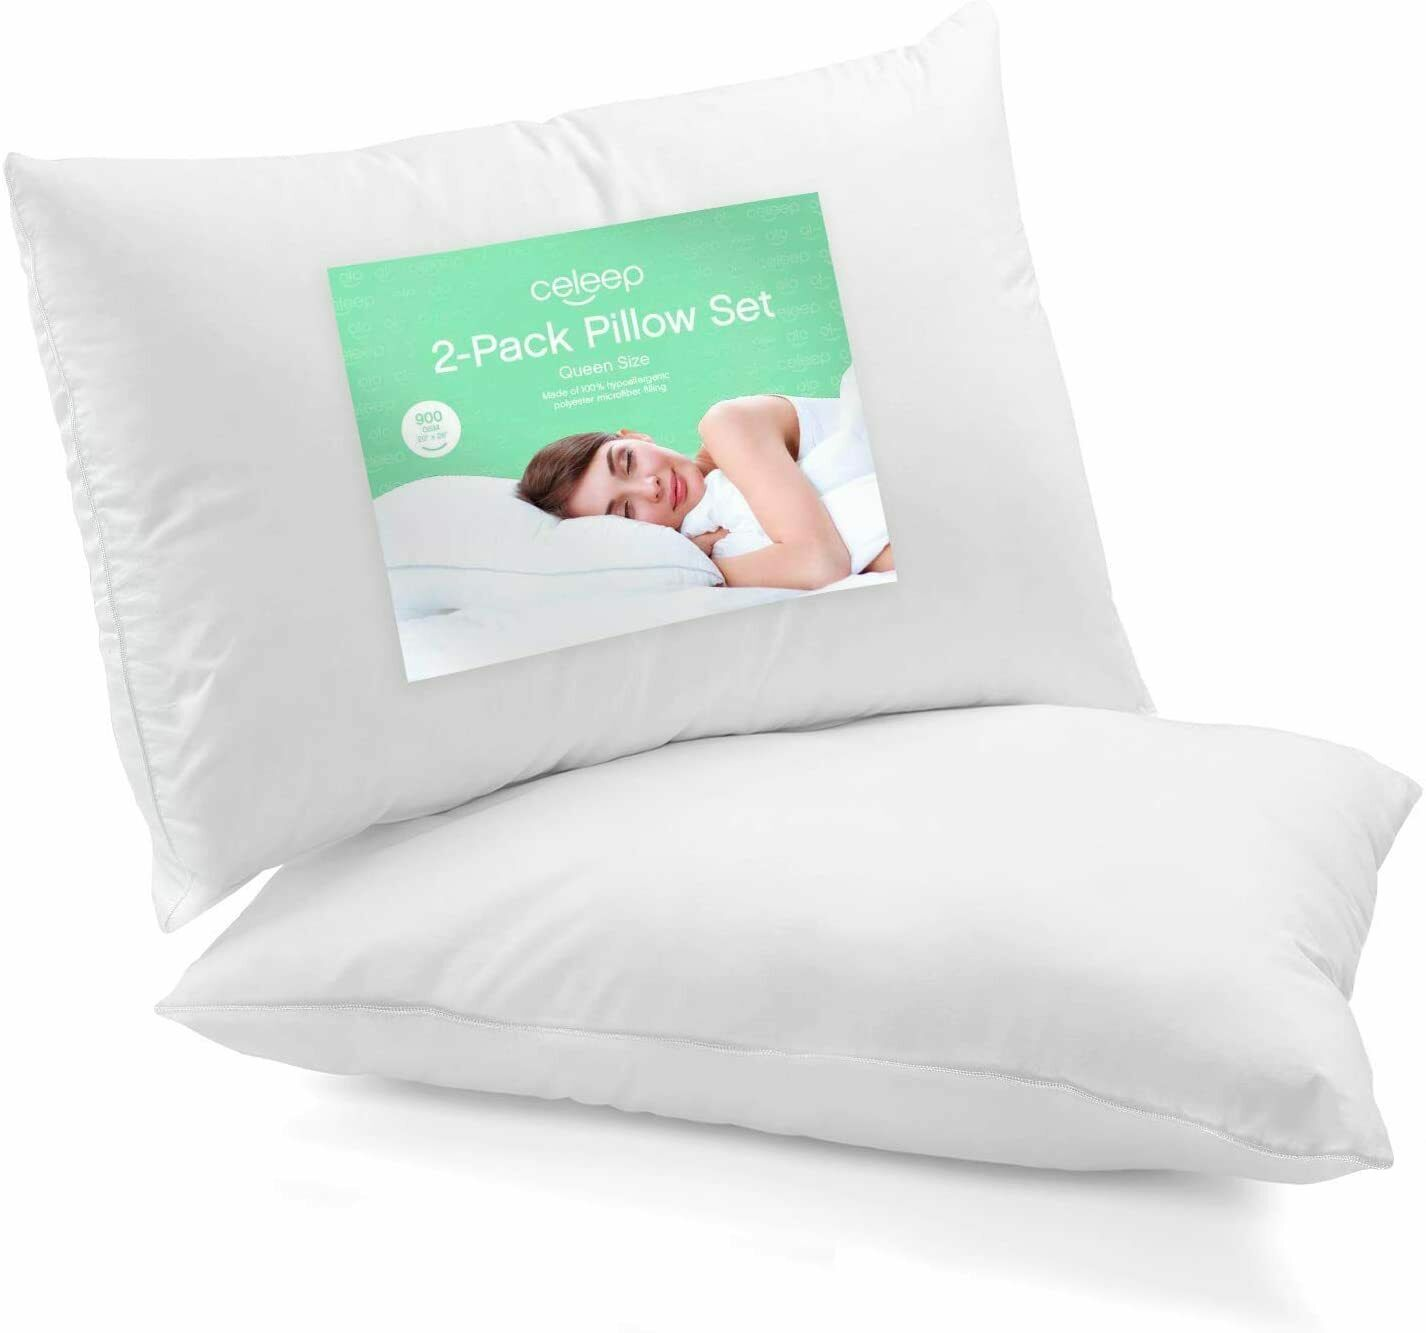 Soft Fiber Fill 20x30 2-Pack Queen Size Bed Pillows for Sleeping Mid Loft